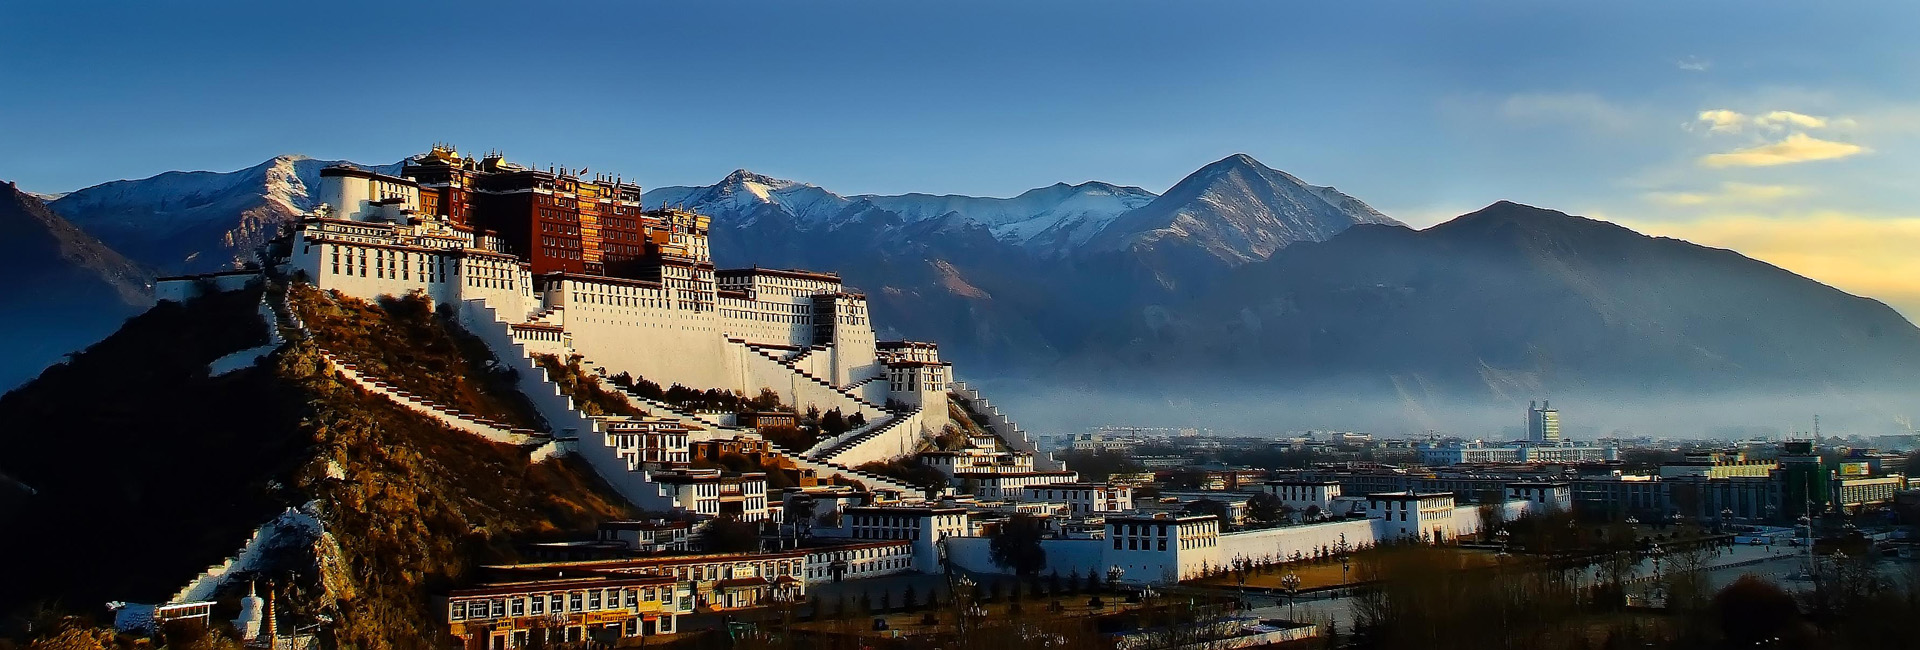 Luxury Nepal Tibet Tour